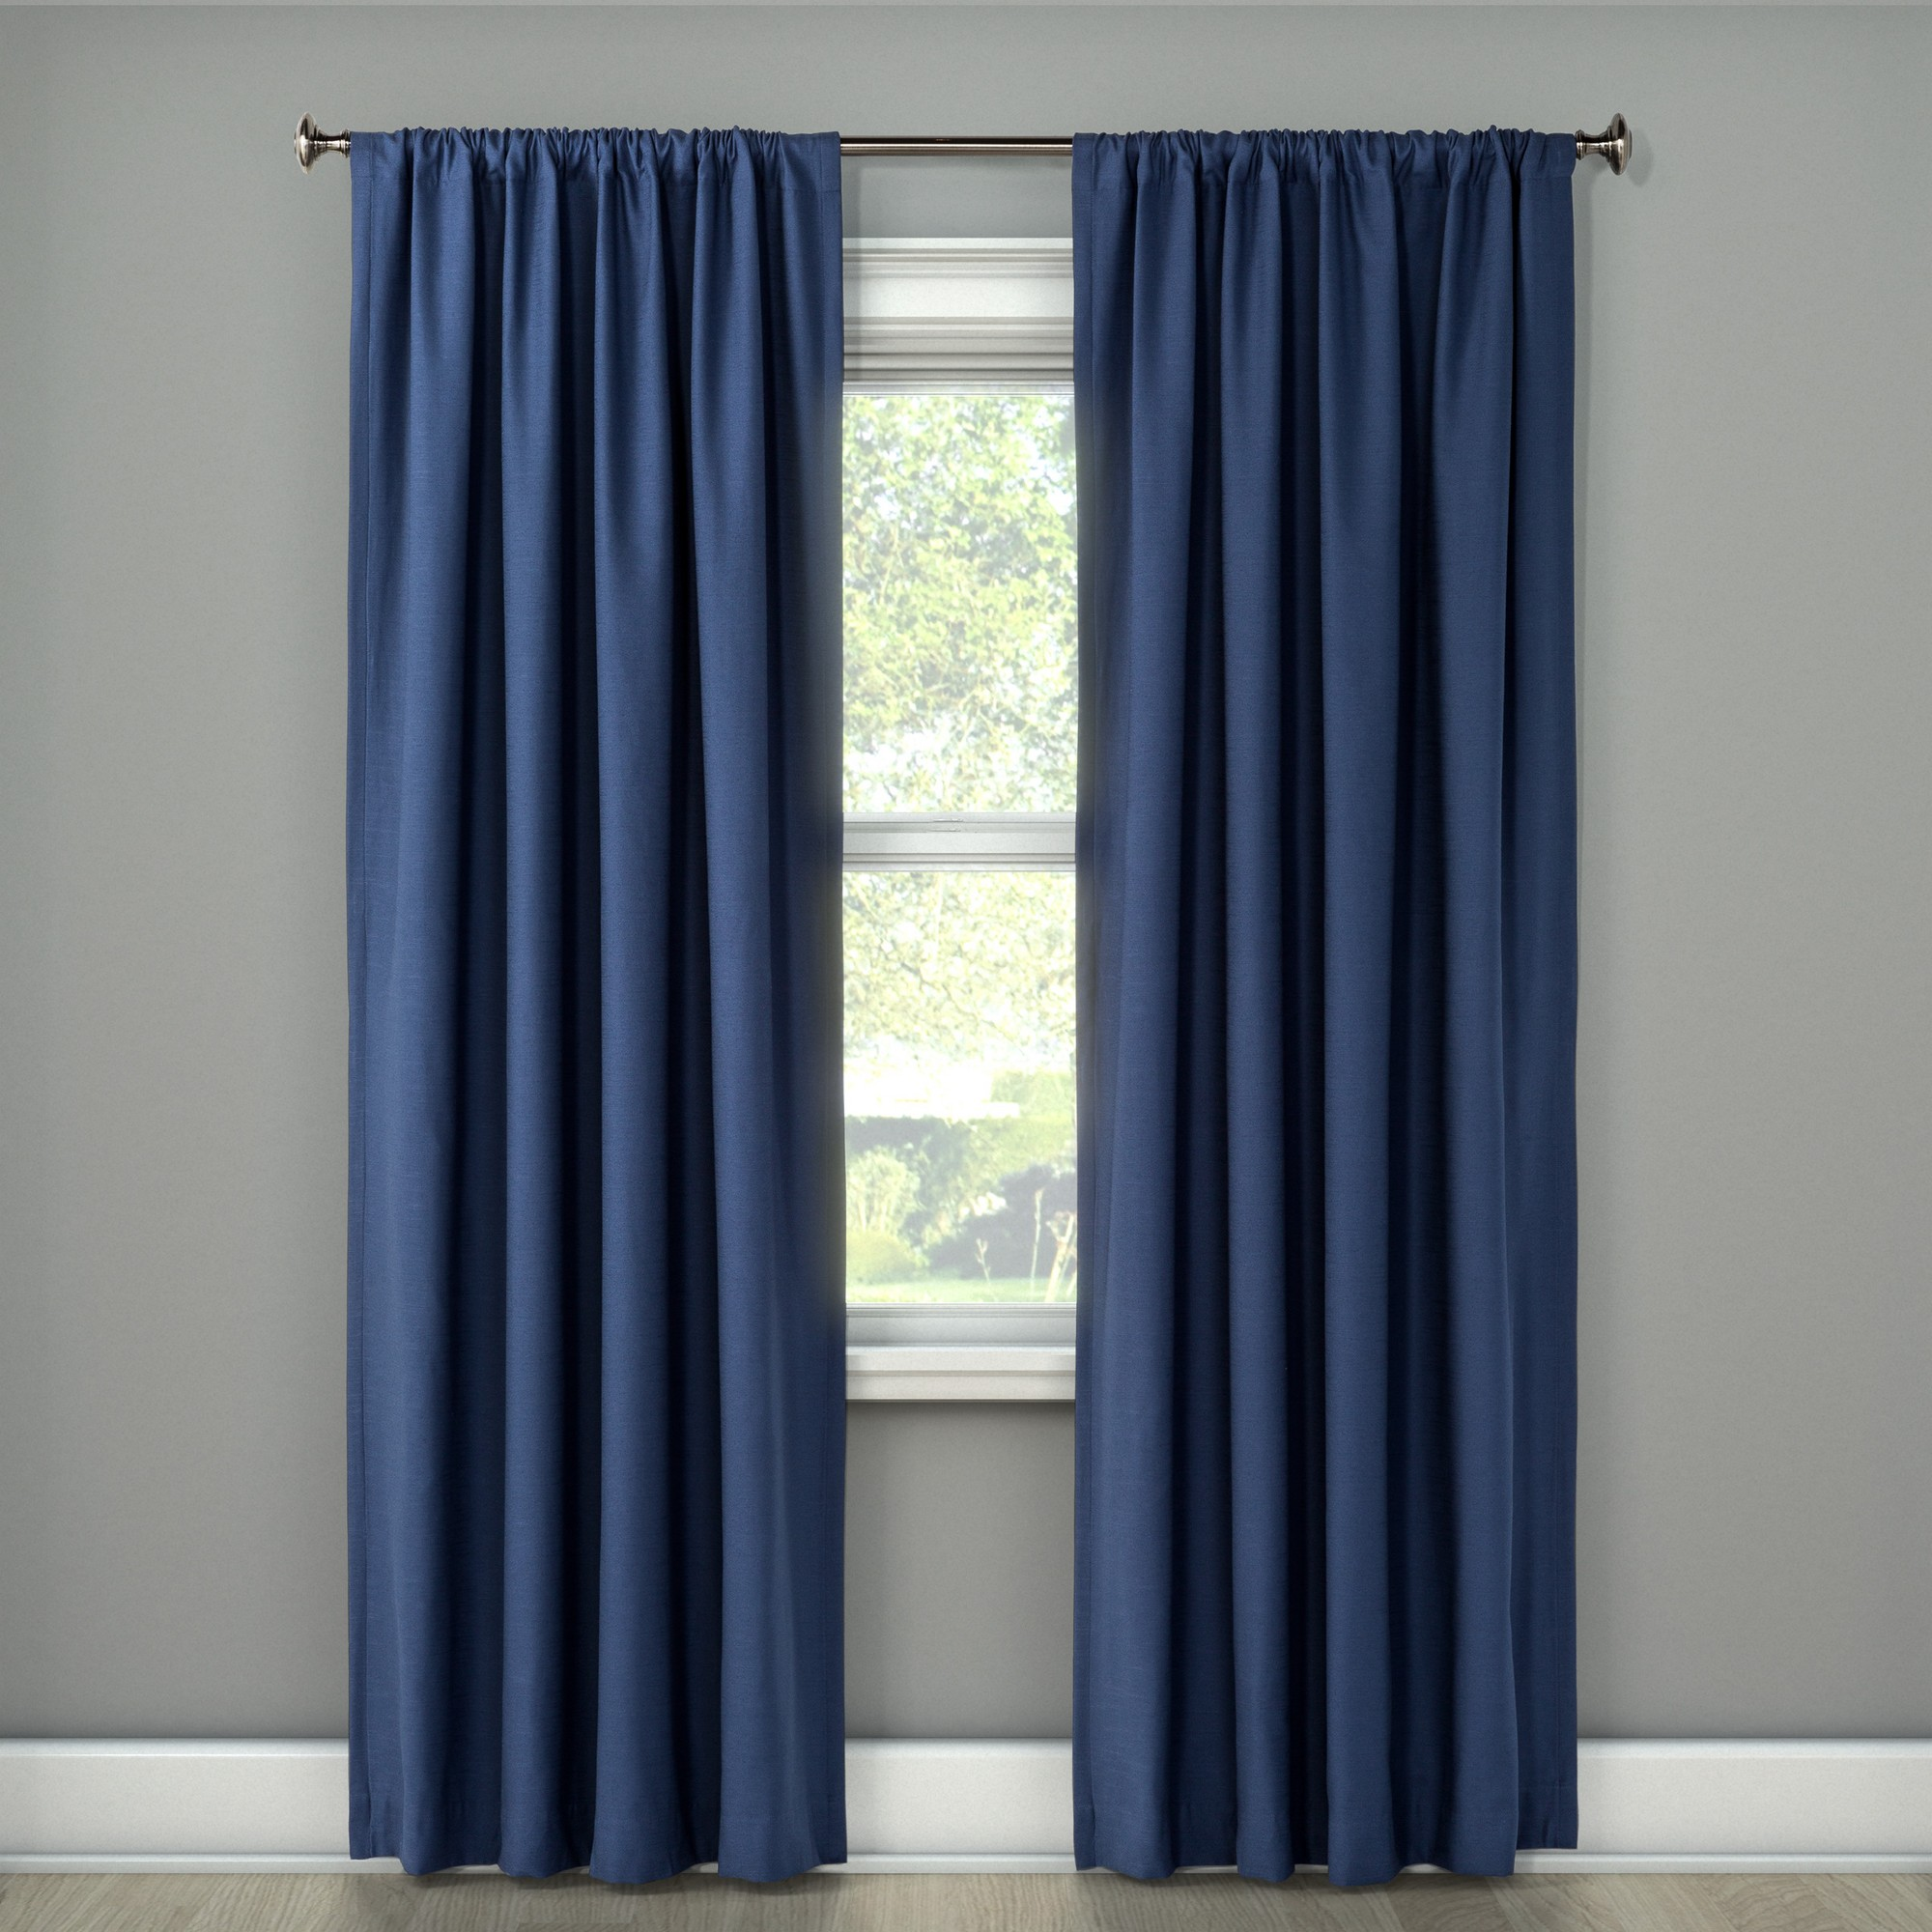 Blackout Curtain Panel Henna Blue 108 Project 62 Blue Willow